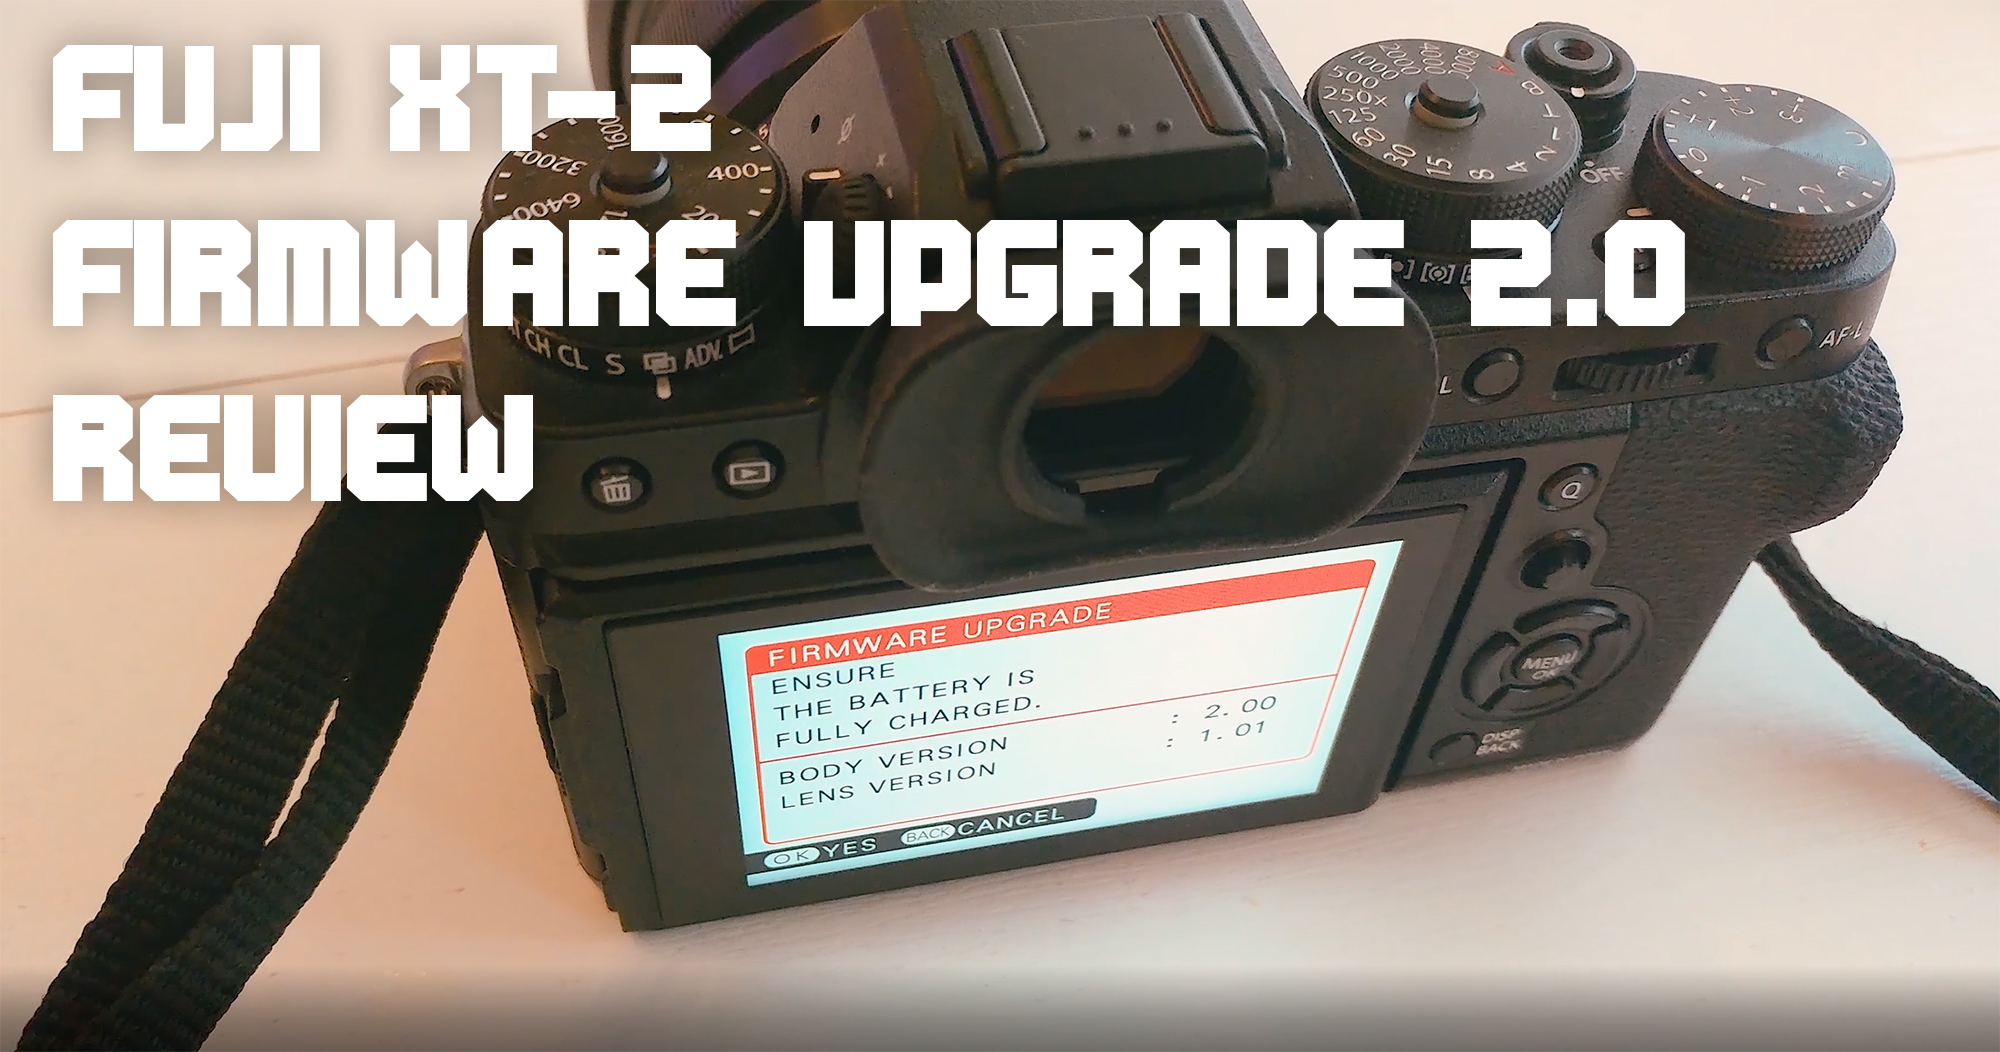 Fuji XT2 Firmware Upgrade 2.0 REVIEW